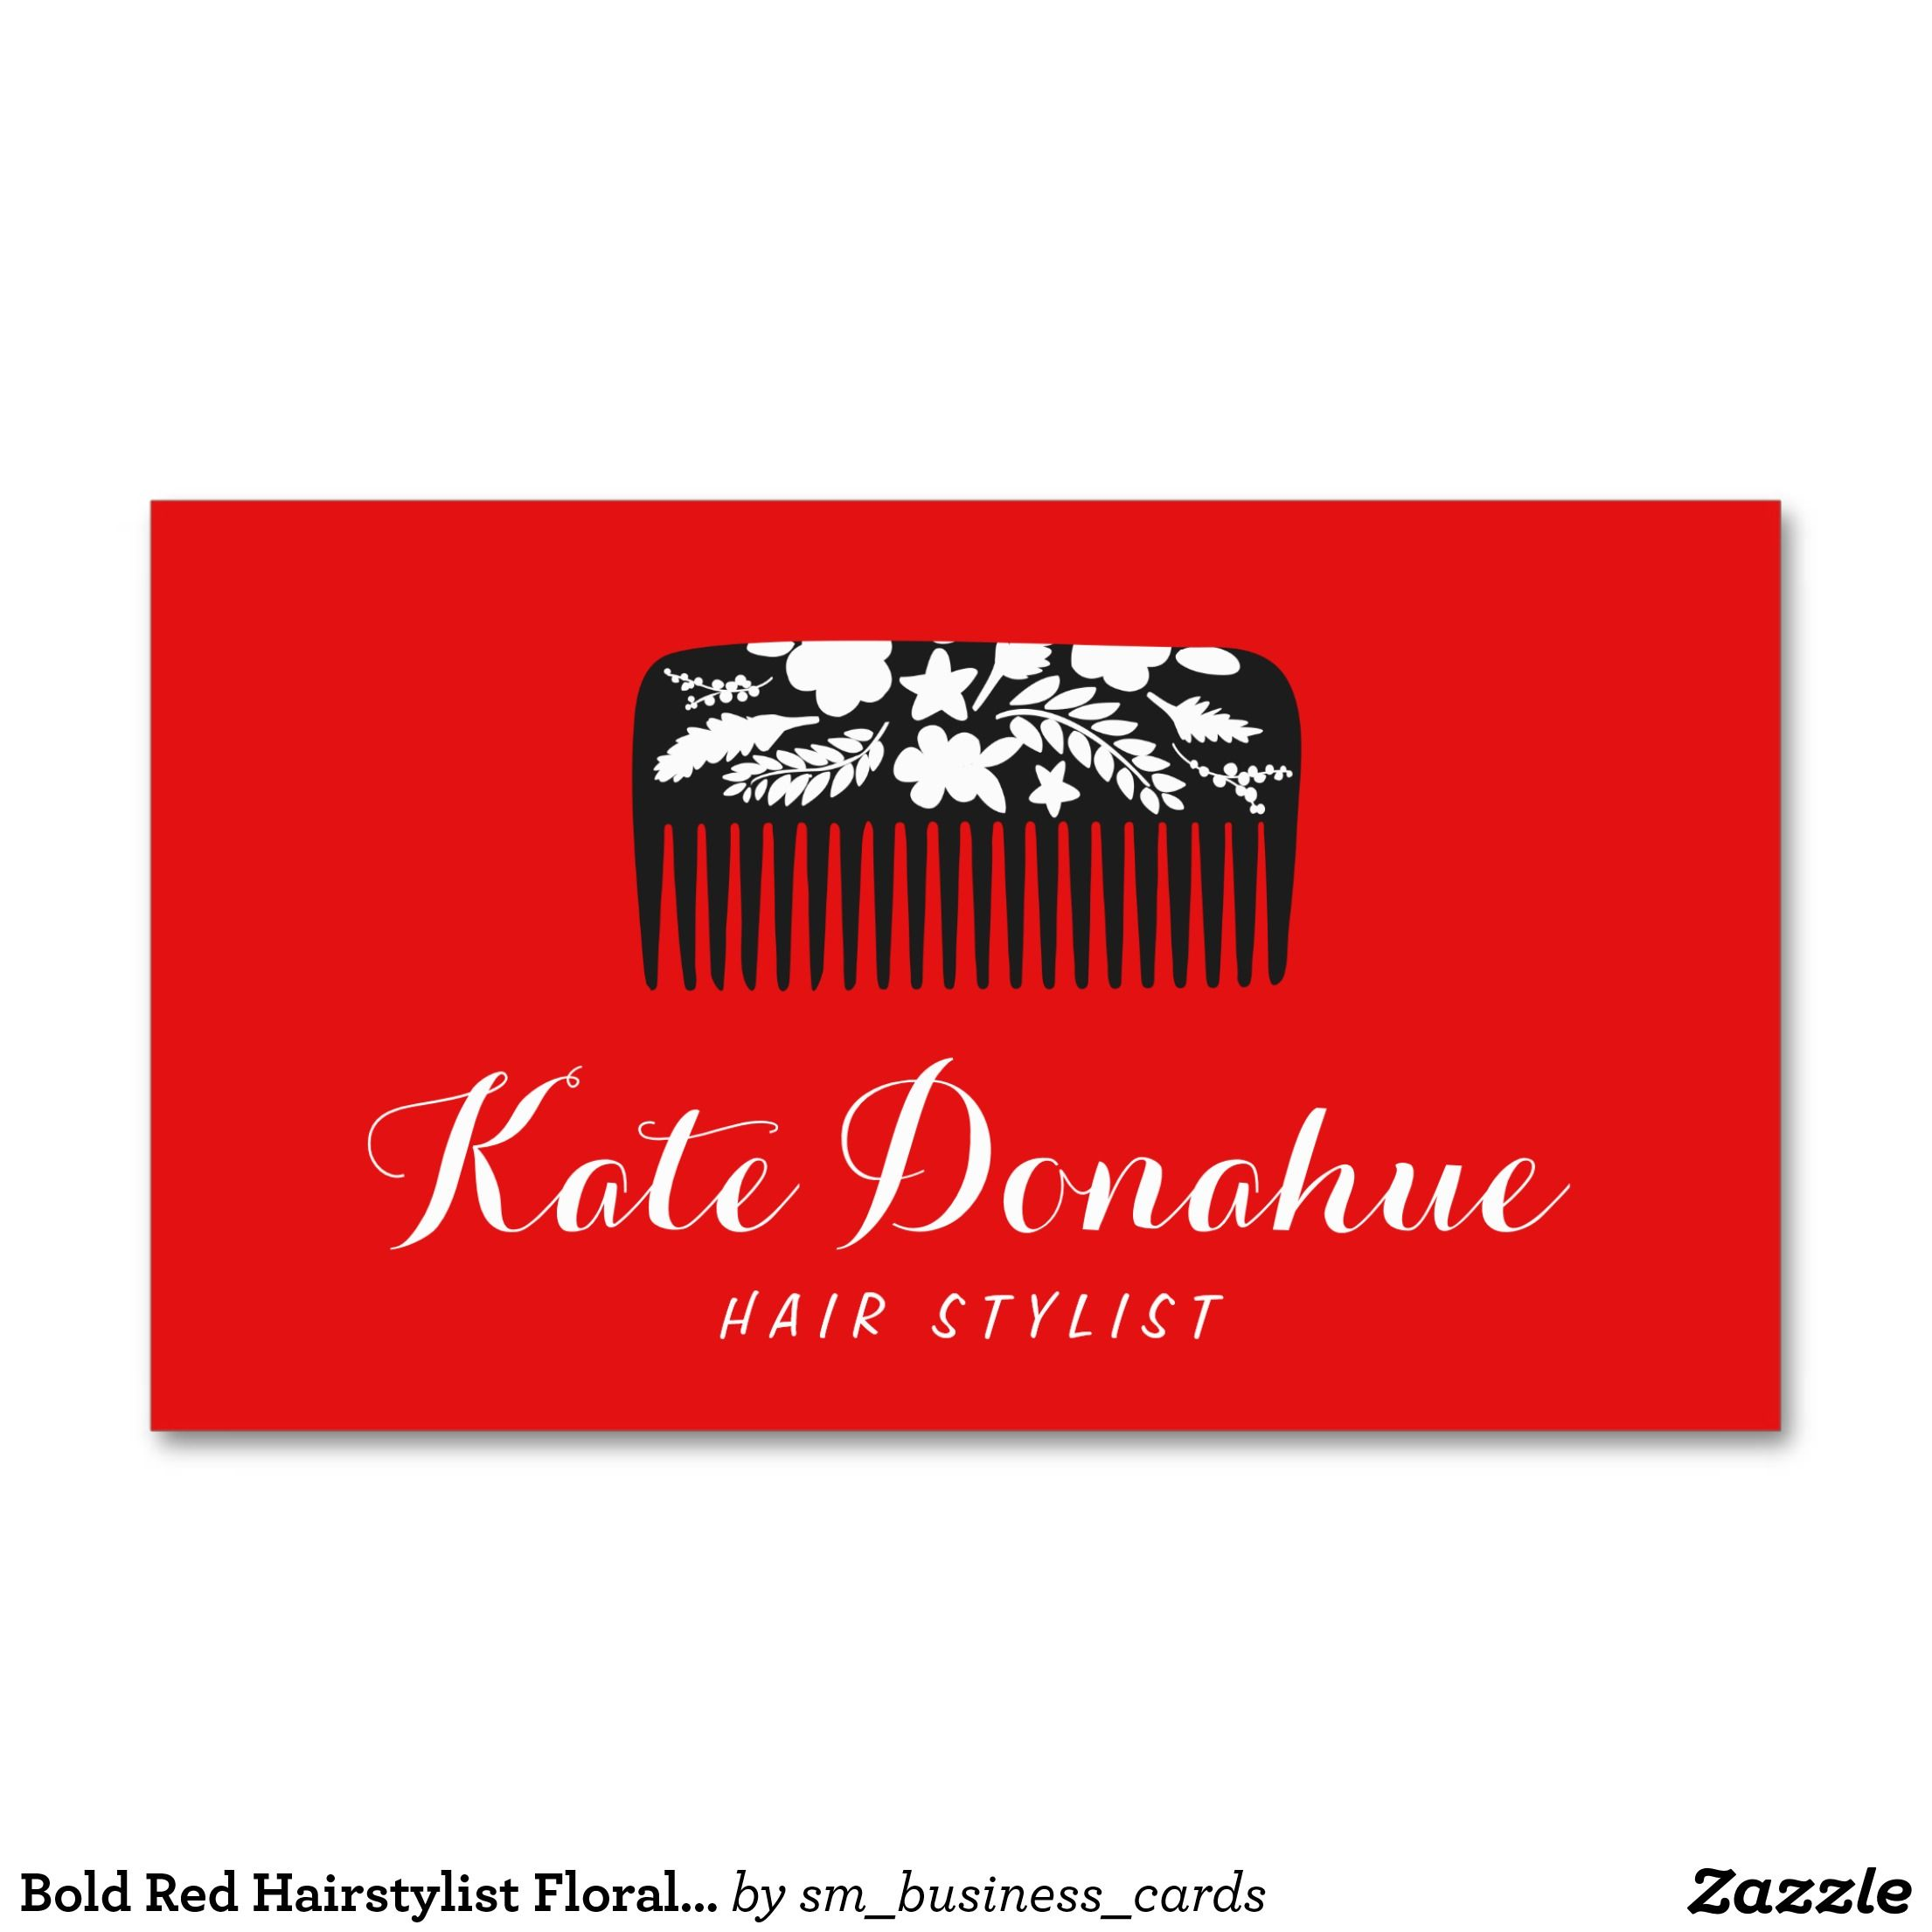 bold red hairstylist floral b hair salon standard business card